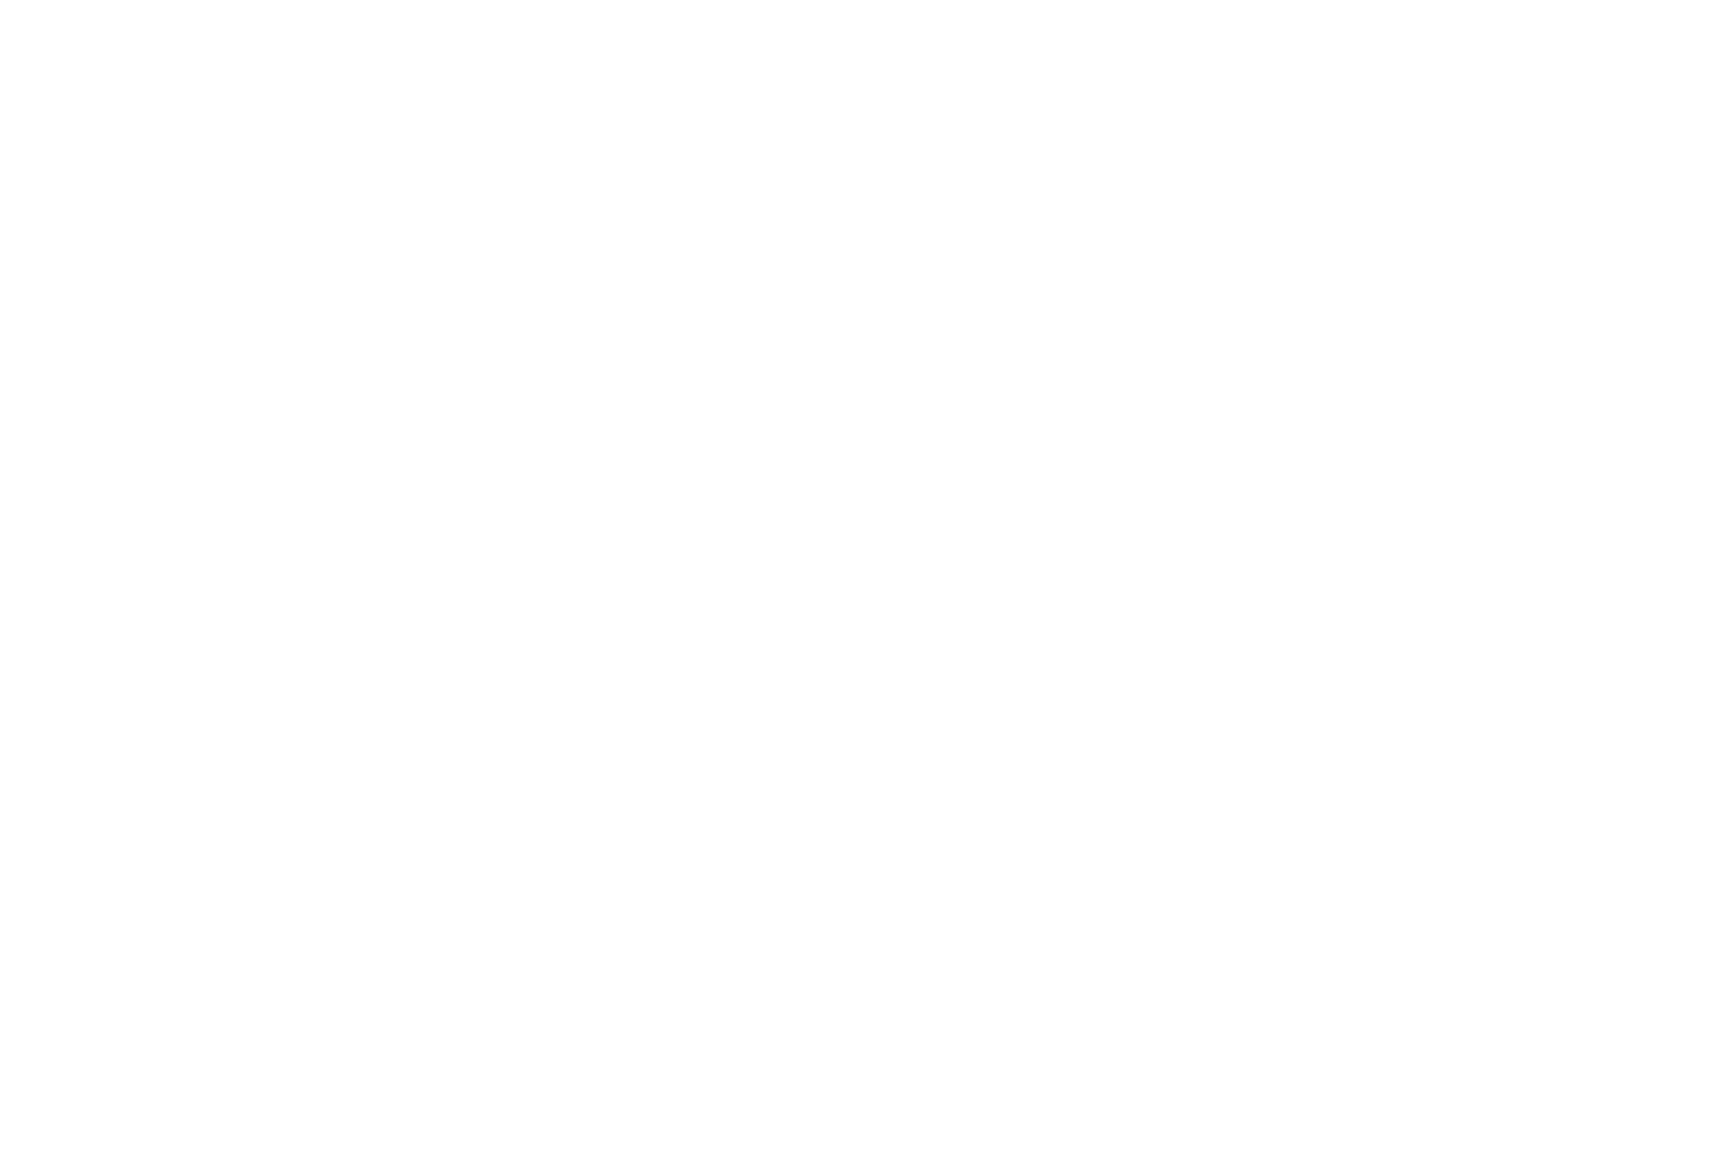 FINALIST - BEST FILM AWARDS - 2018